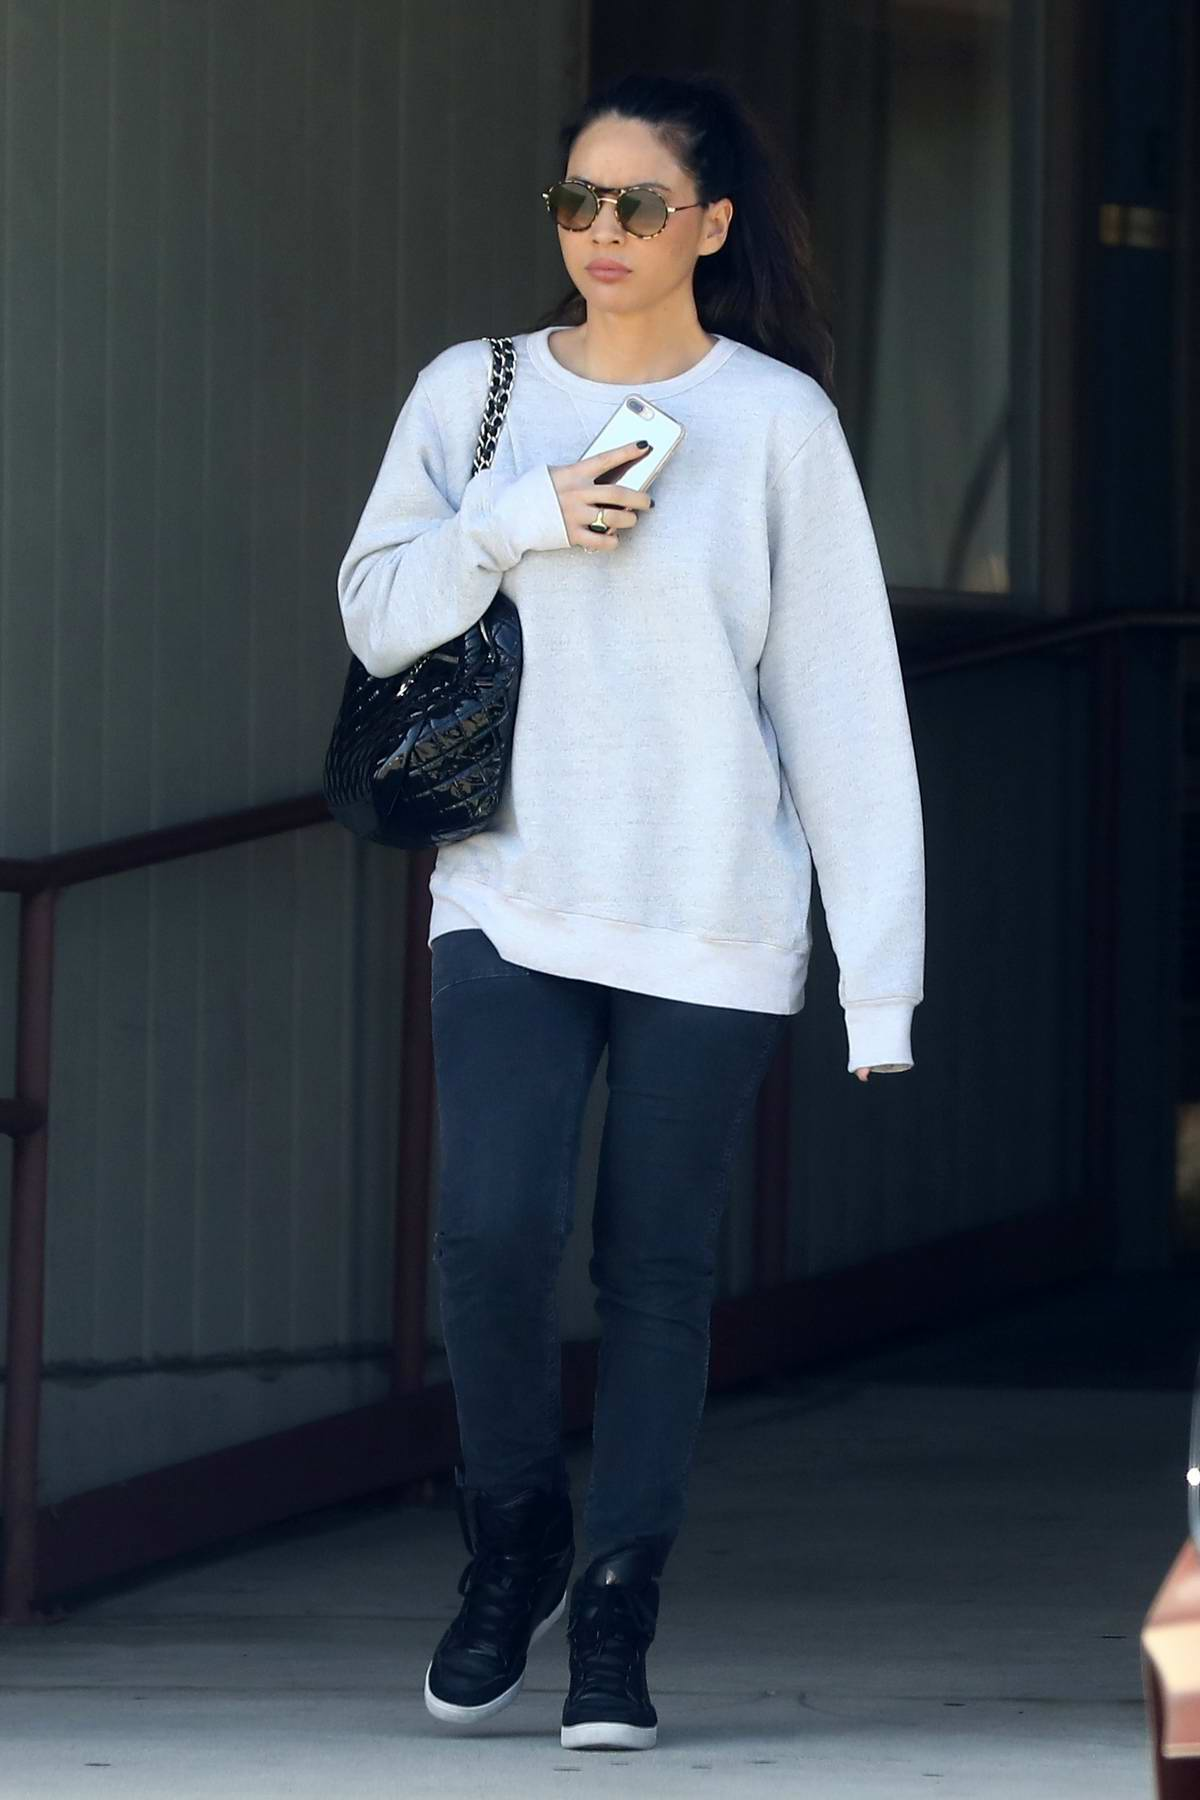 Olivia Munn keeps it casual during a Spa visit in Los Angeles